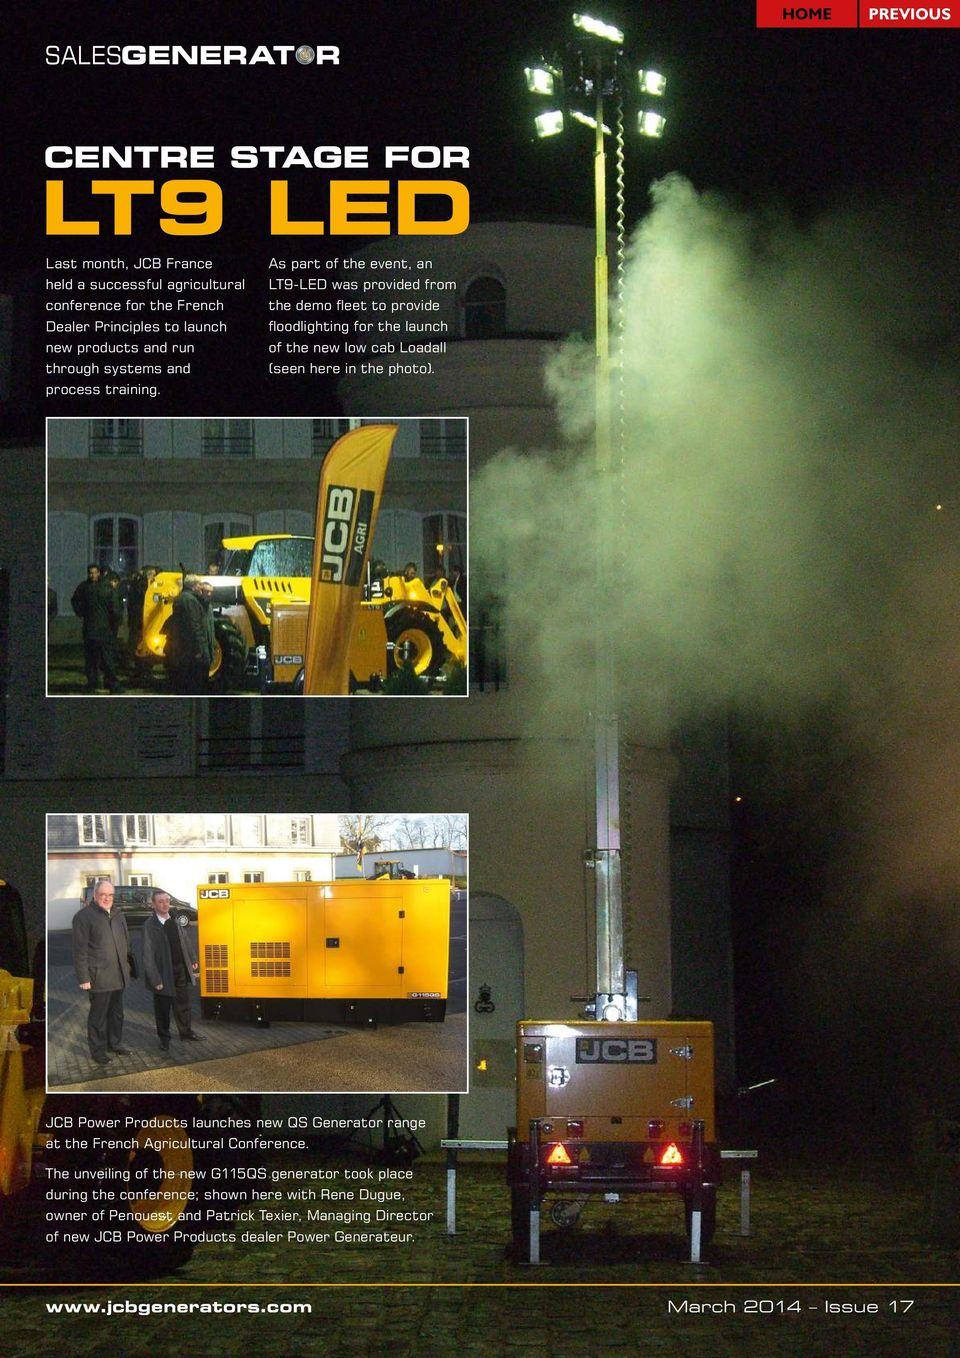 As part of the event, an LT9-LED was provided from the demo fleet to provide floodlighting for the launch of the new low cab Loadall (seen here in the photo).